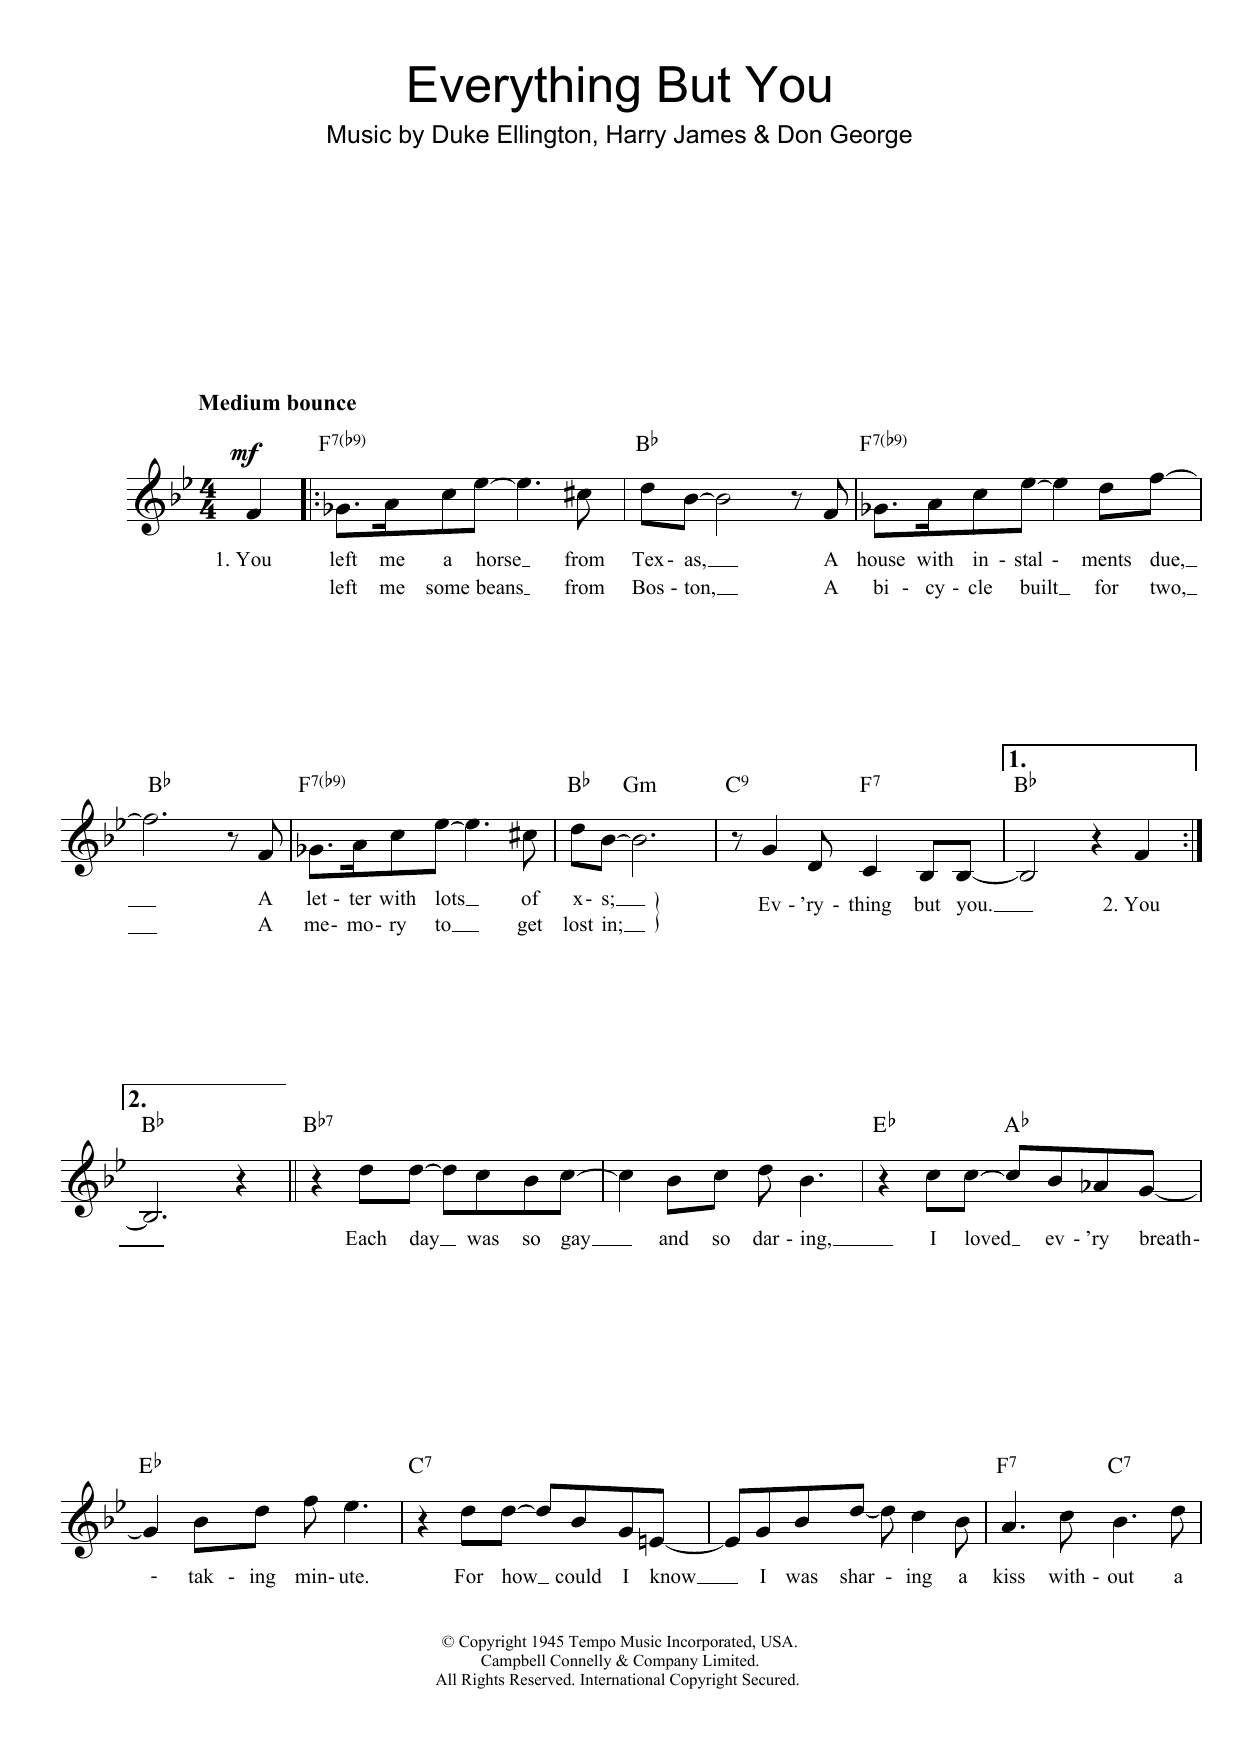 Everything But You Sheet Music